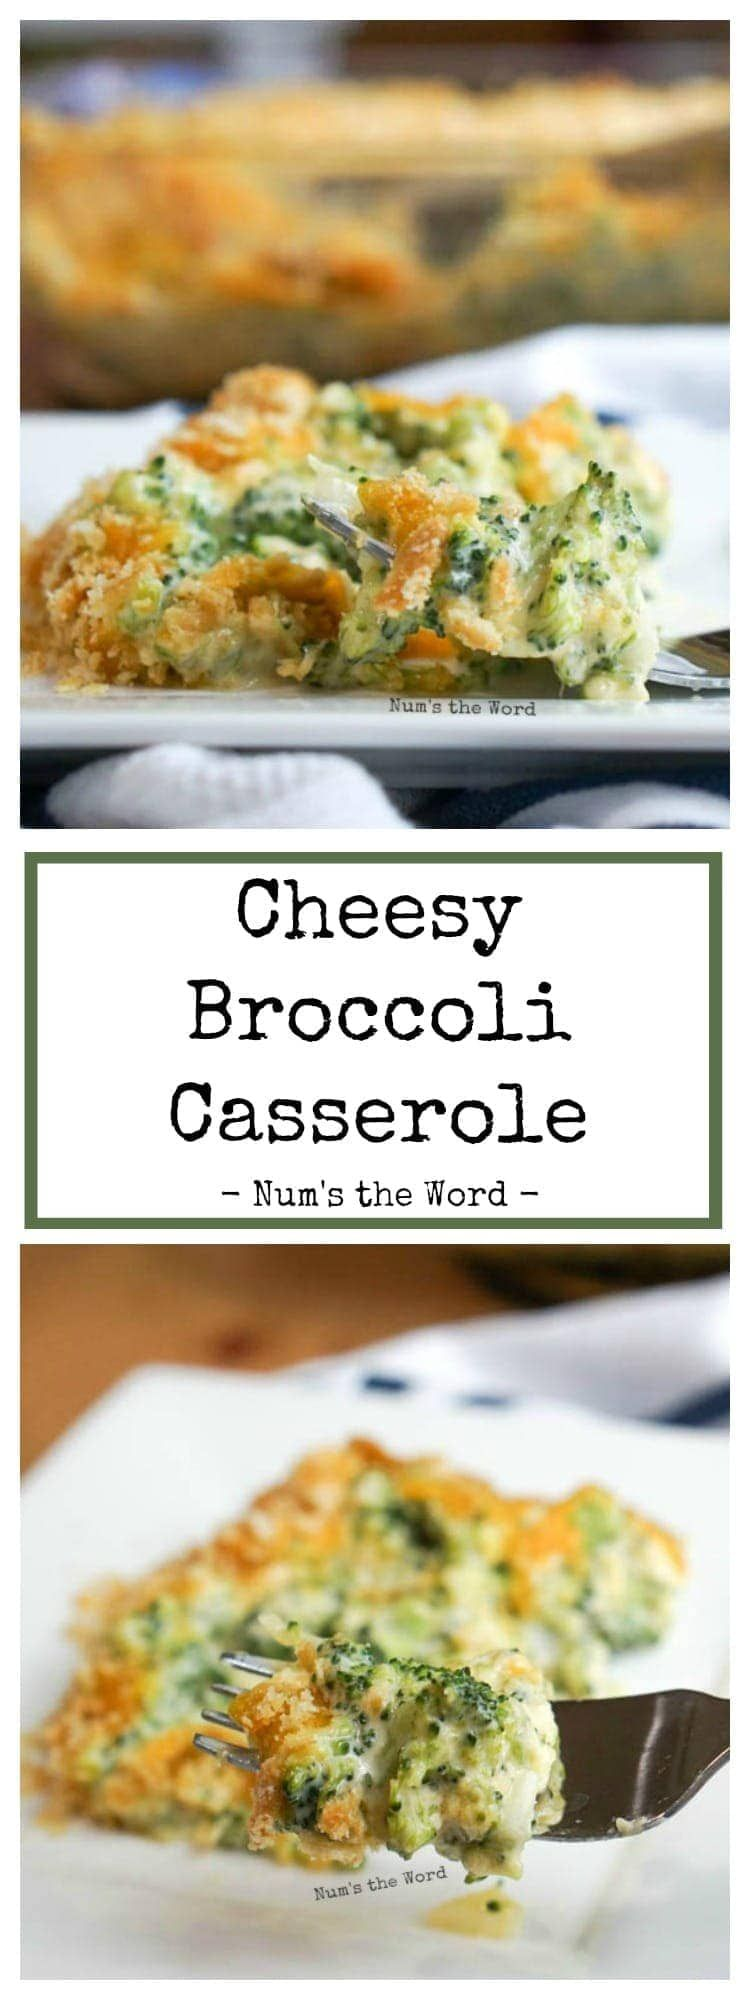 VIDEO Cheesy Broccoli Casserole is the perfect side dish to any meal Easy to prepare tastes delicious and is a crowd pleaser A family favorite recipe